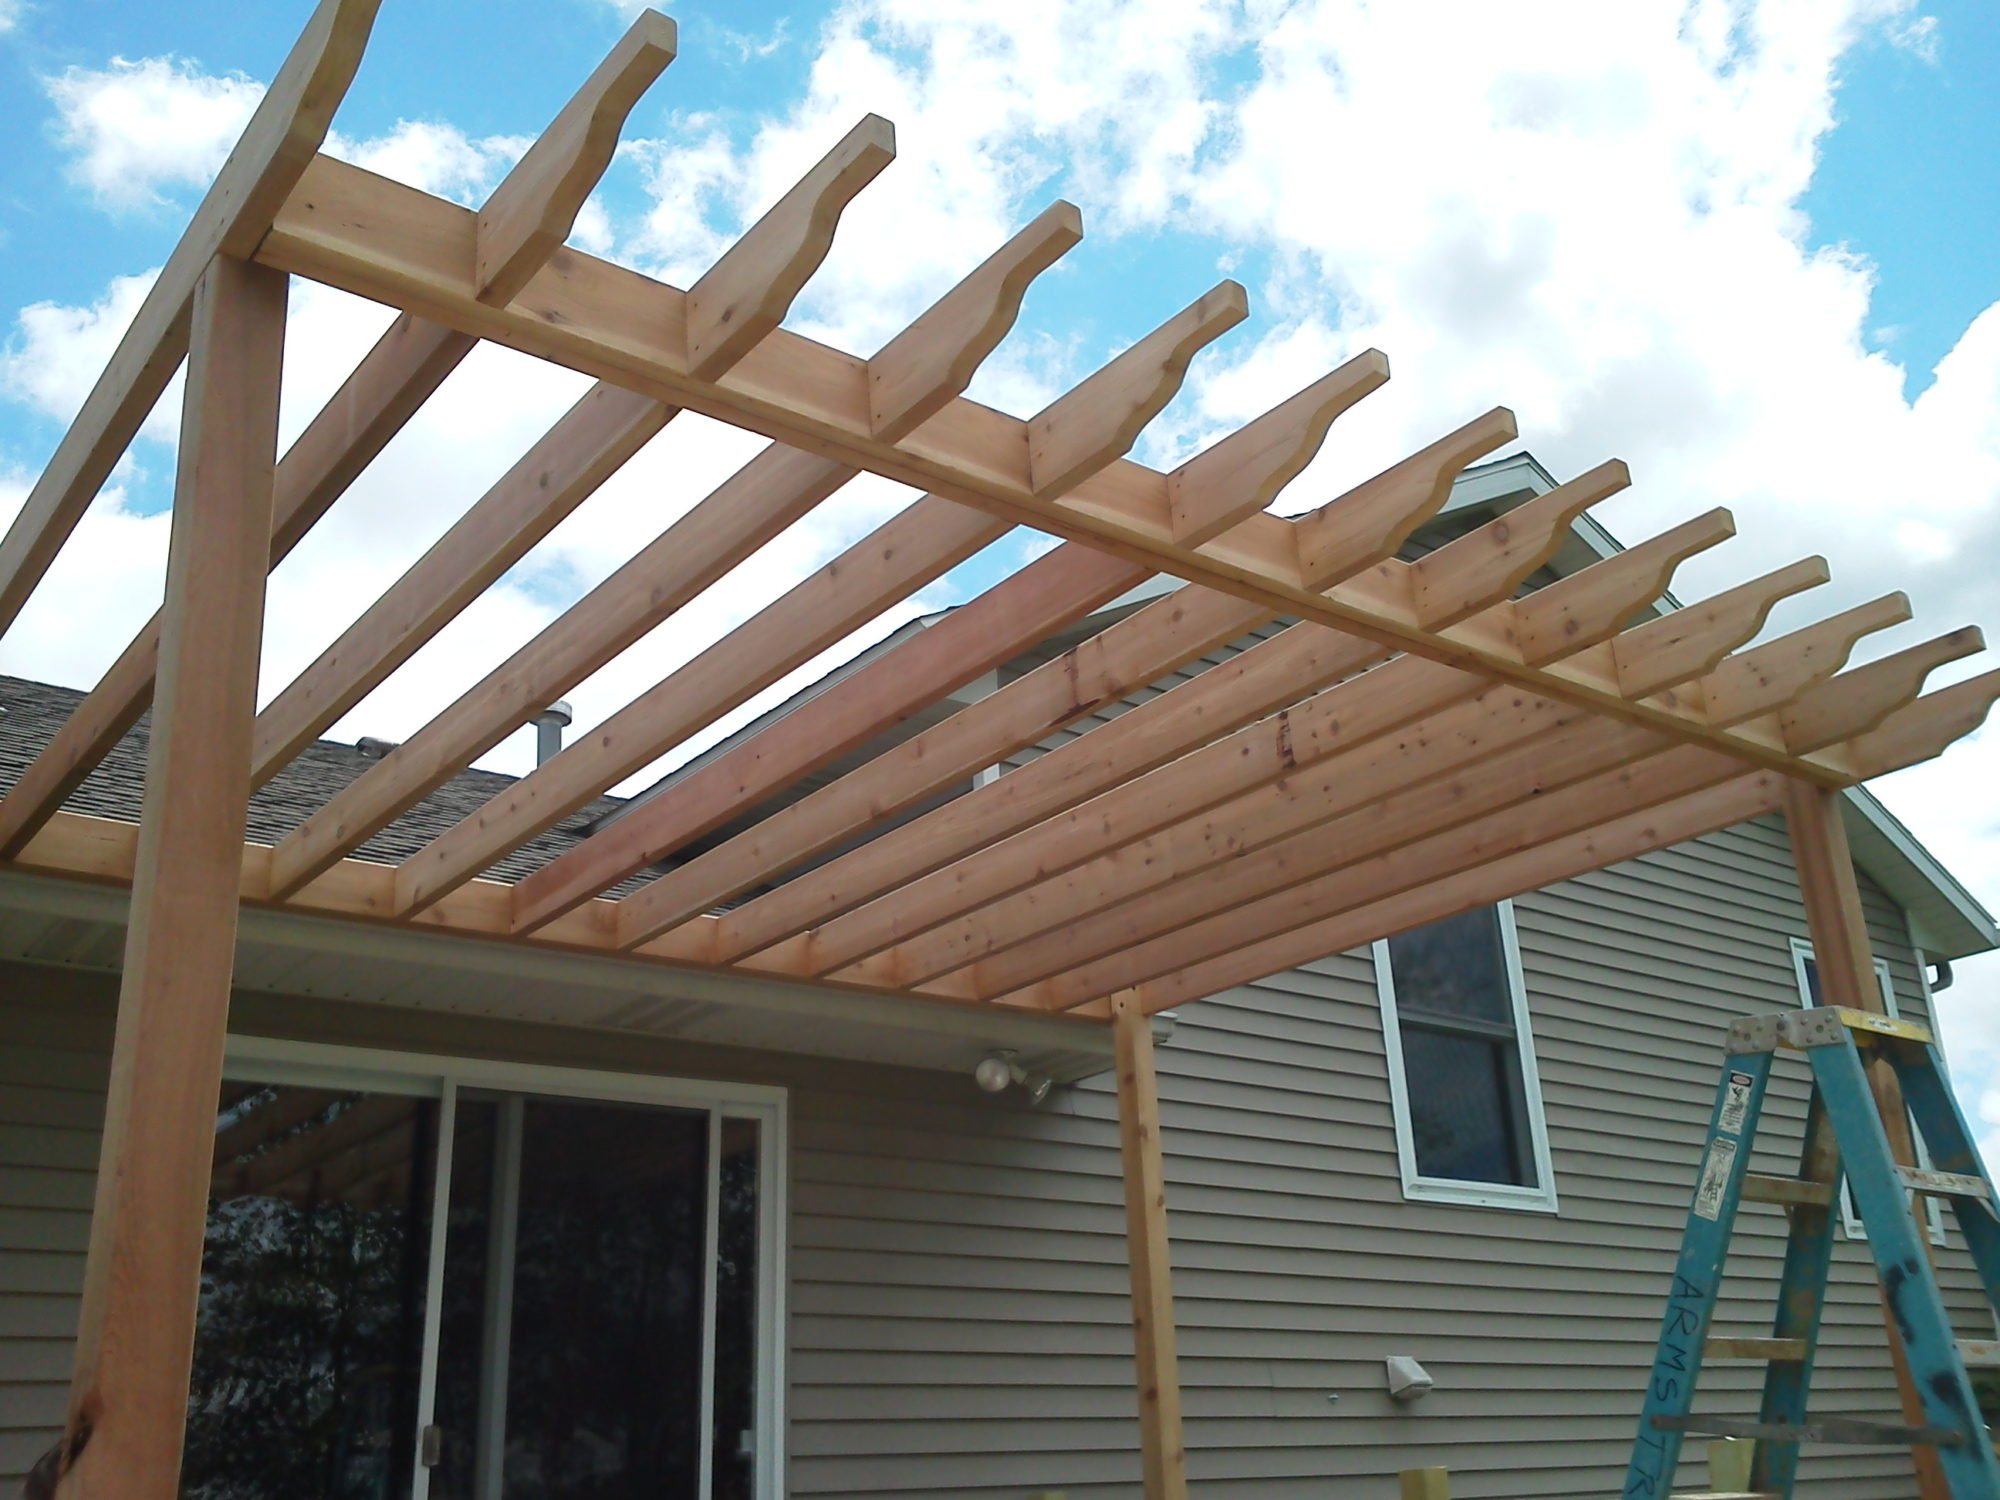 Trellis for Shade